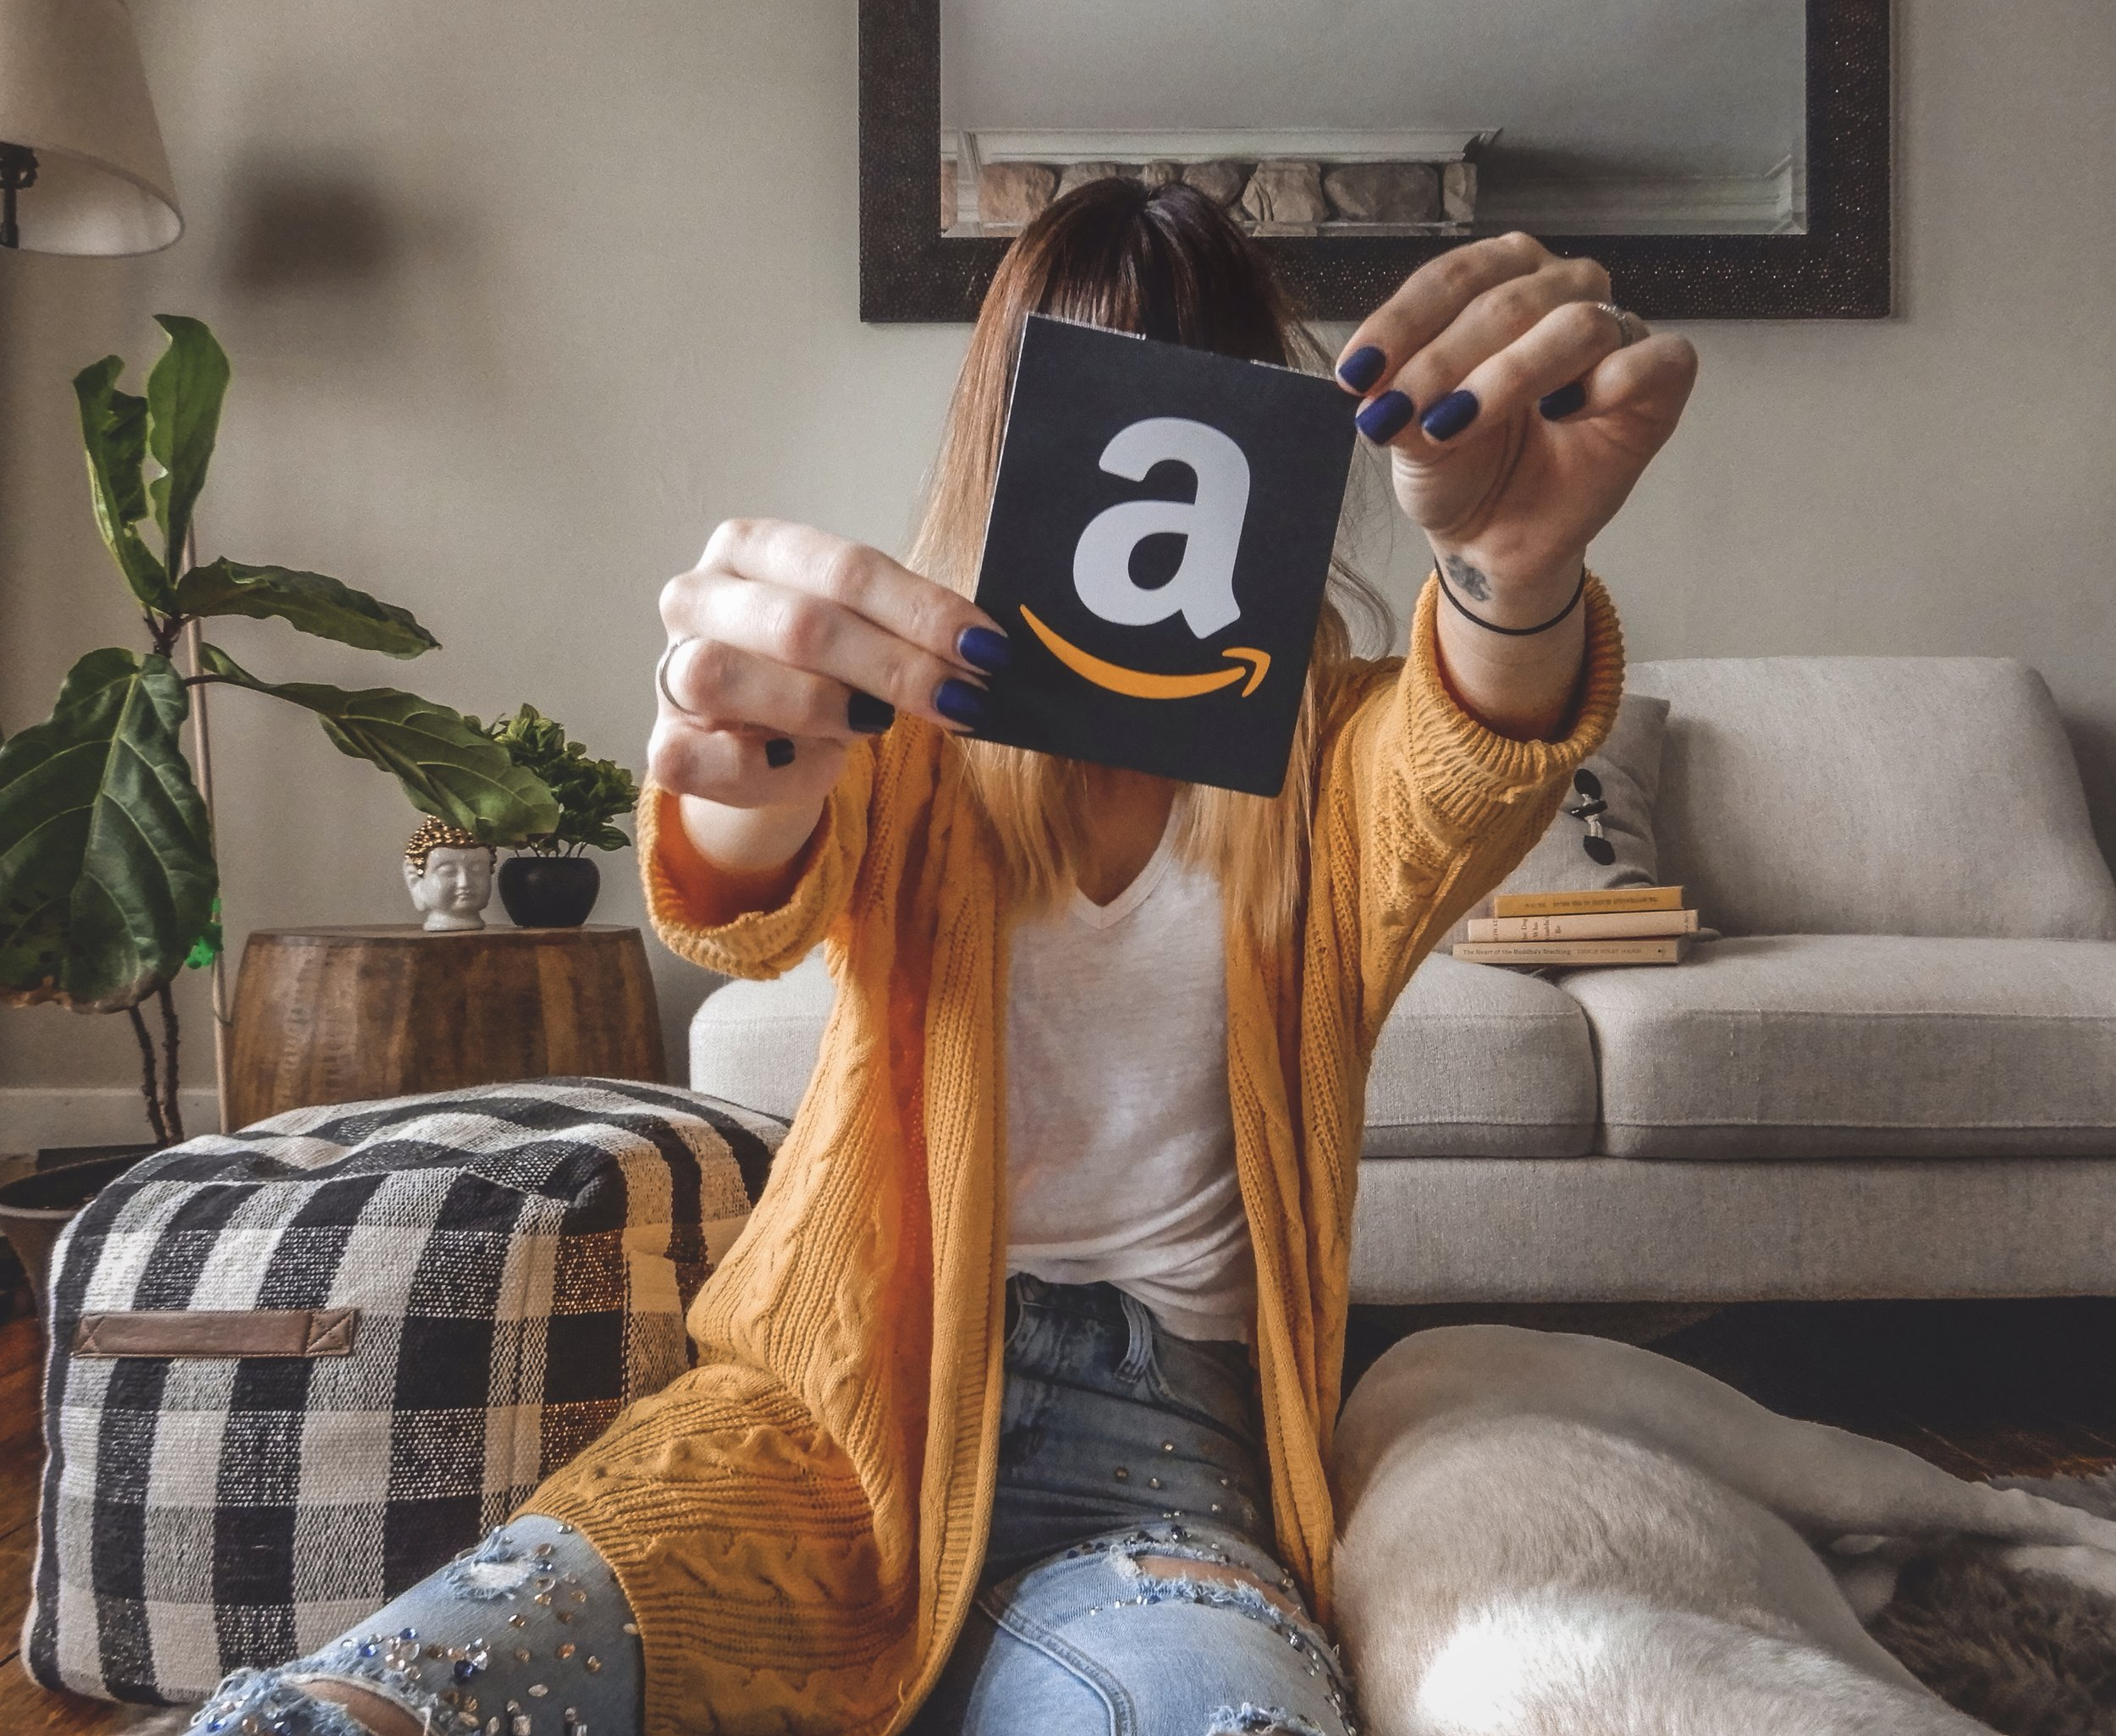 THIS POST USES AFFILIATE LINKS: This Blissful Moment is a participant in the Amazon Services LLC Associates Program, an affiliate advertising program designed to provide a means for us to earn fees by linking to Amazon.com and affiliated sites